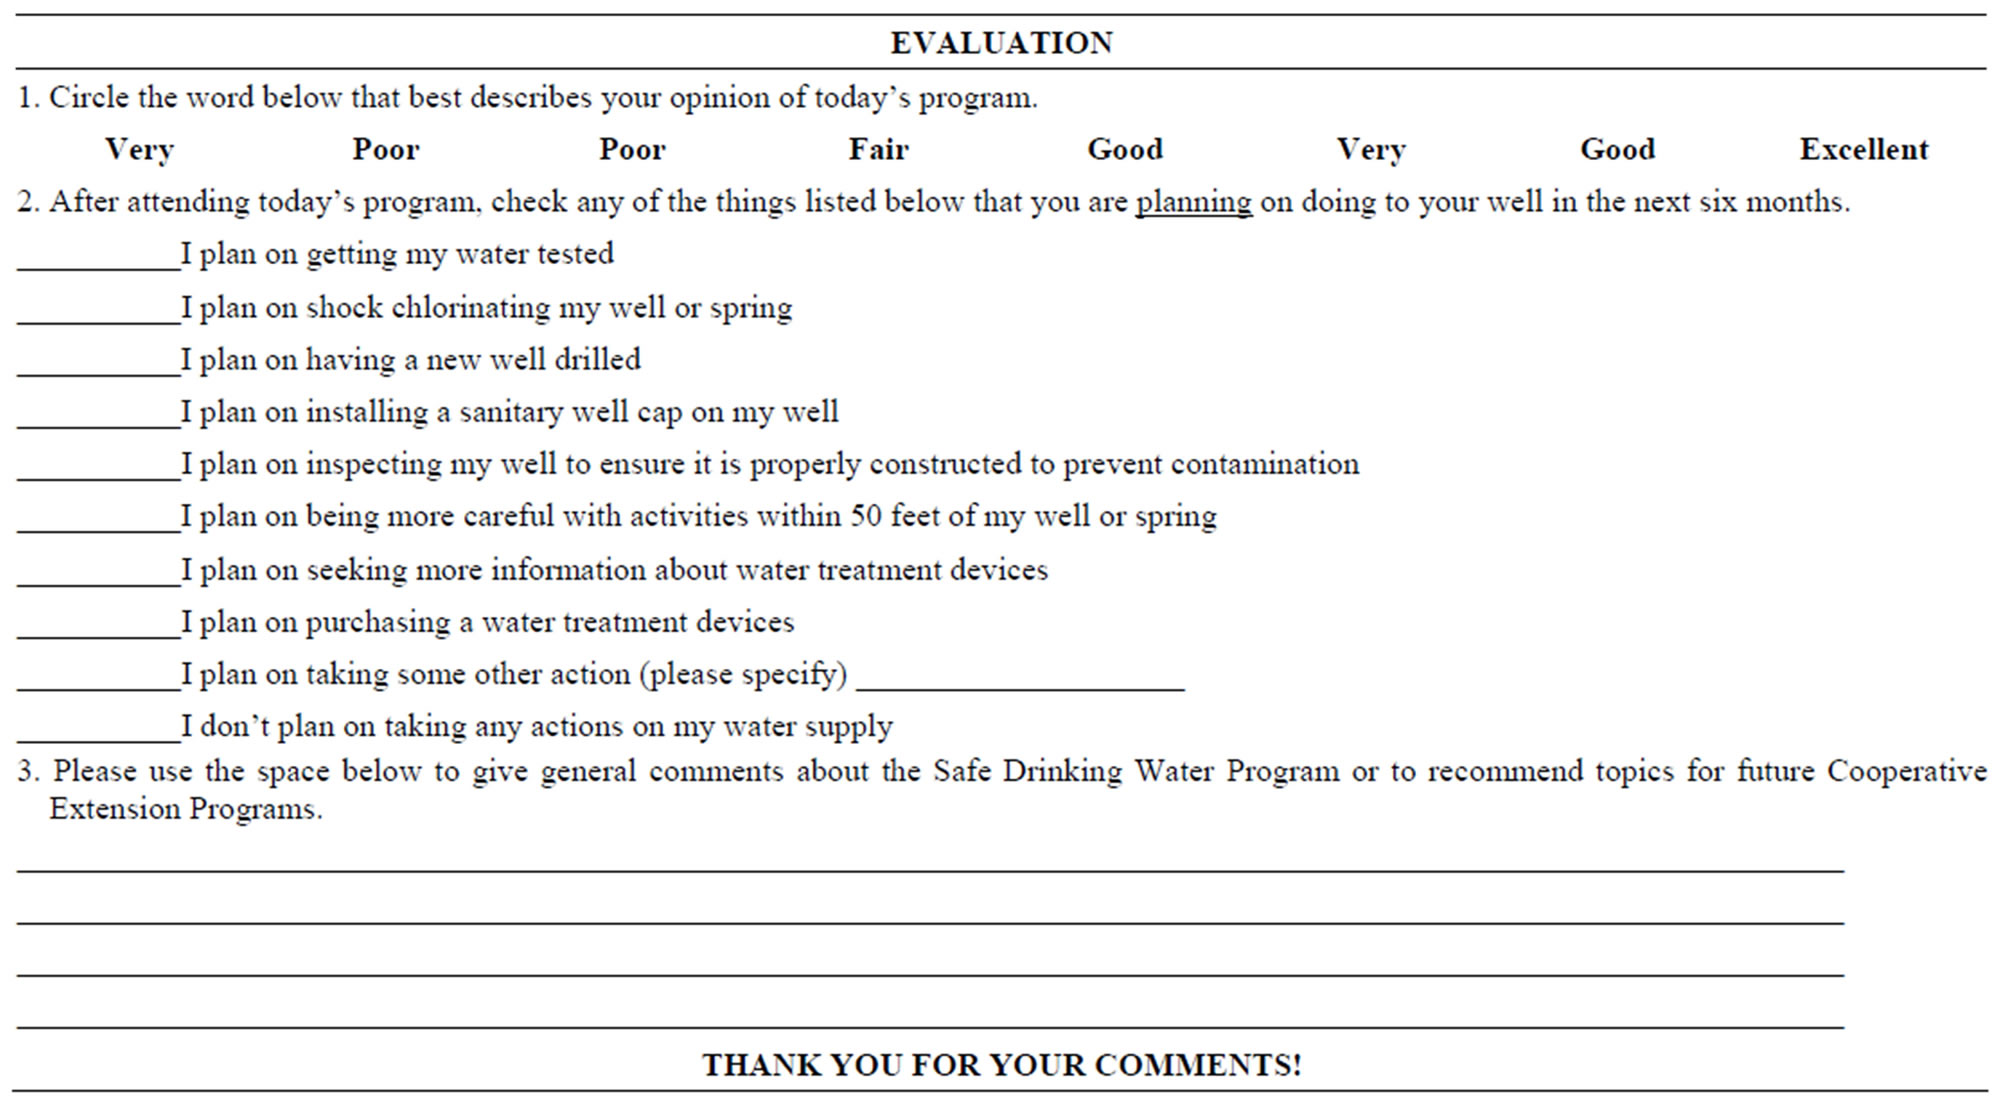 Drinking Water Quality Clinics And Outreach In Delaware Focusing 07b5be66  F7c6 4865 Ac67 301b90368ae0 4 6702088 41521htm. Conference Evaluation Form  In Word